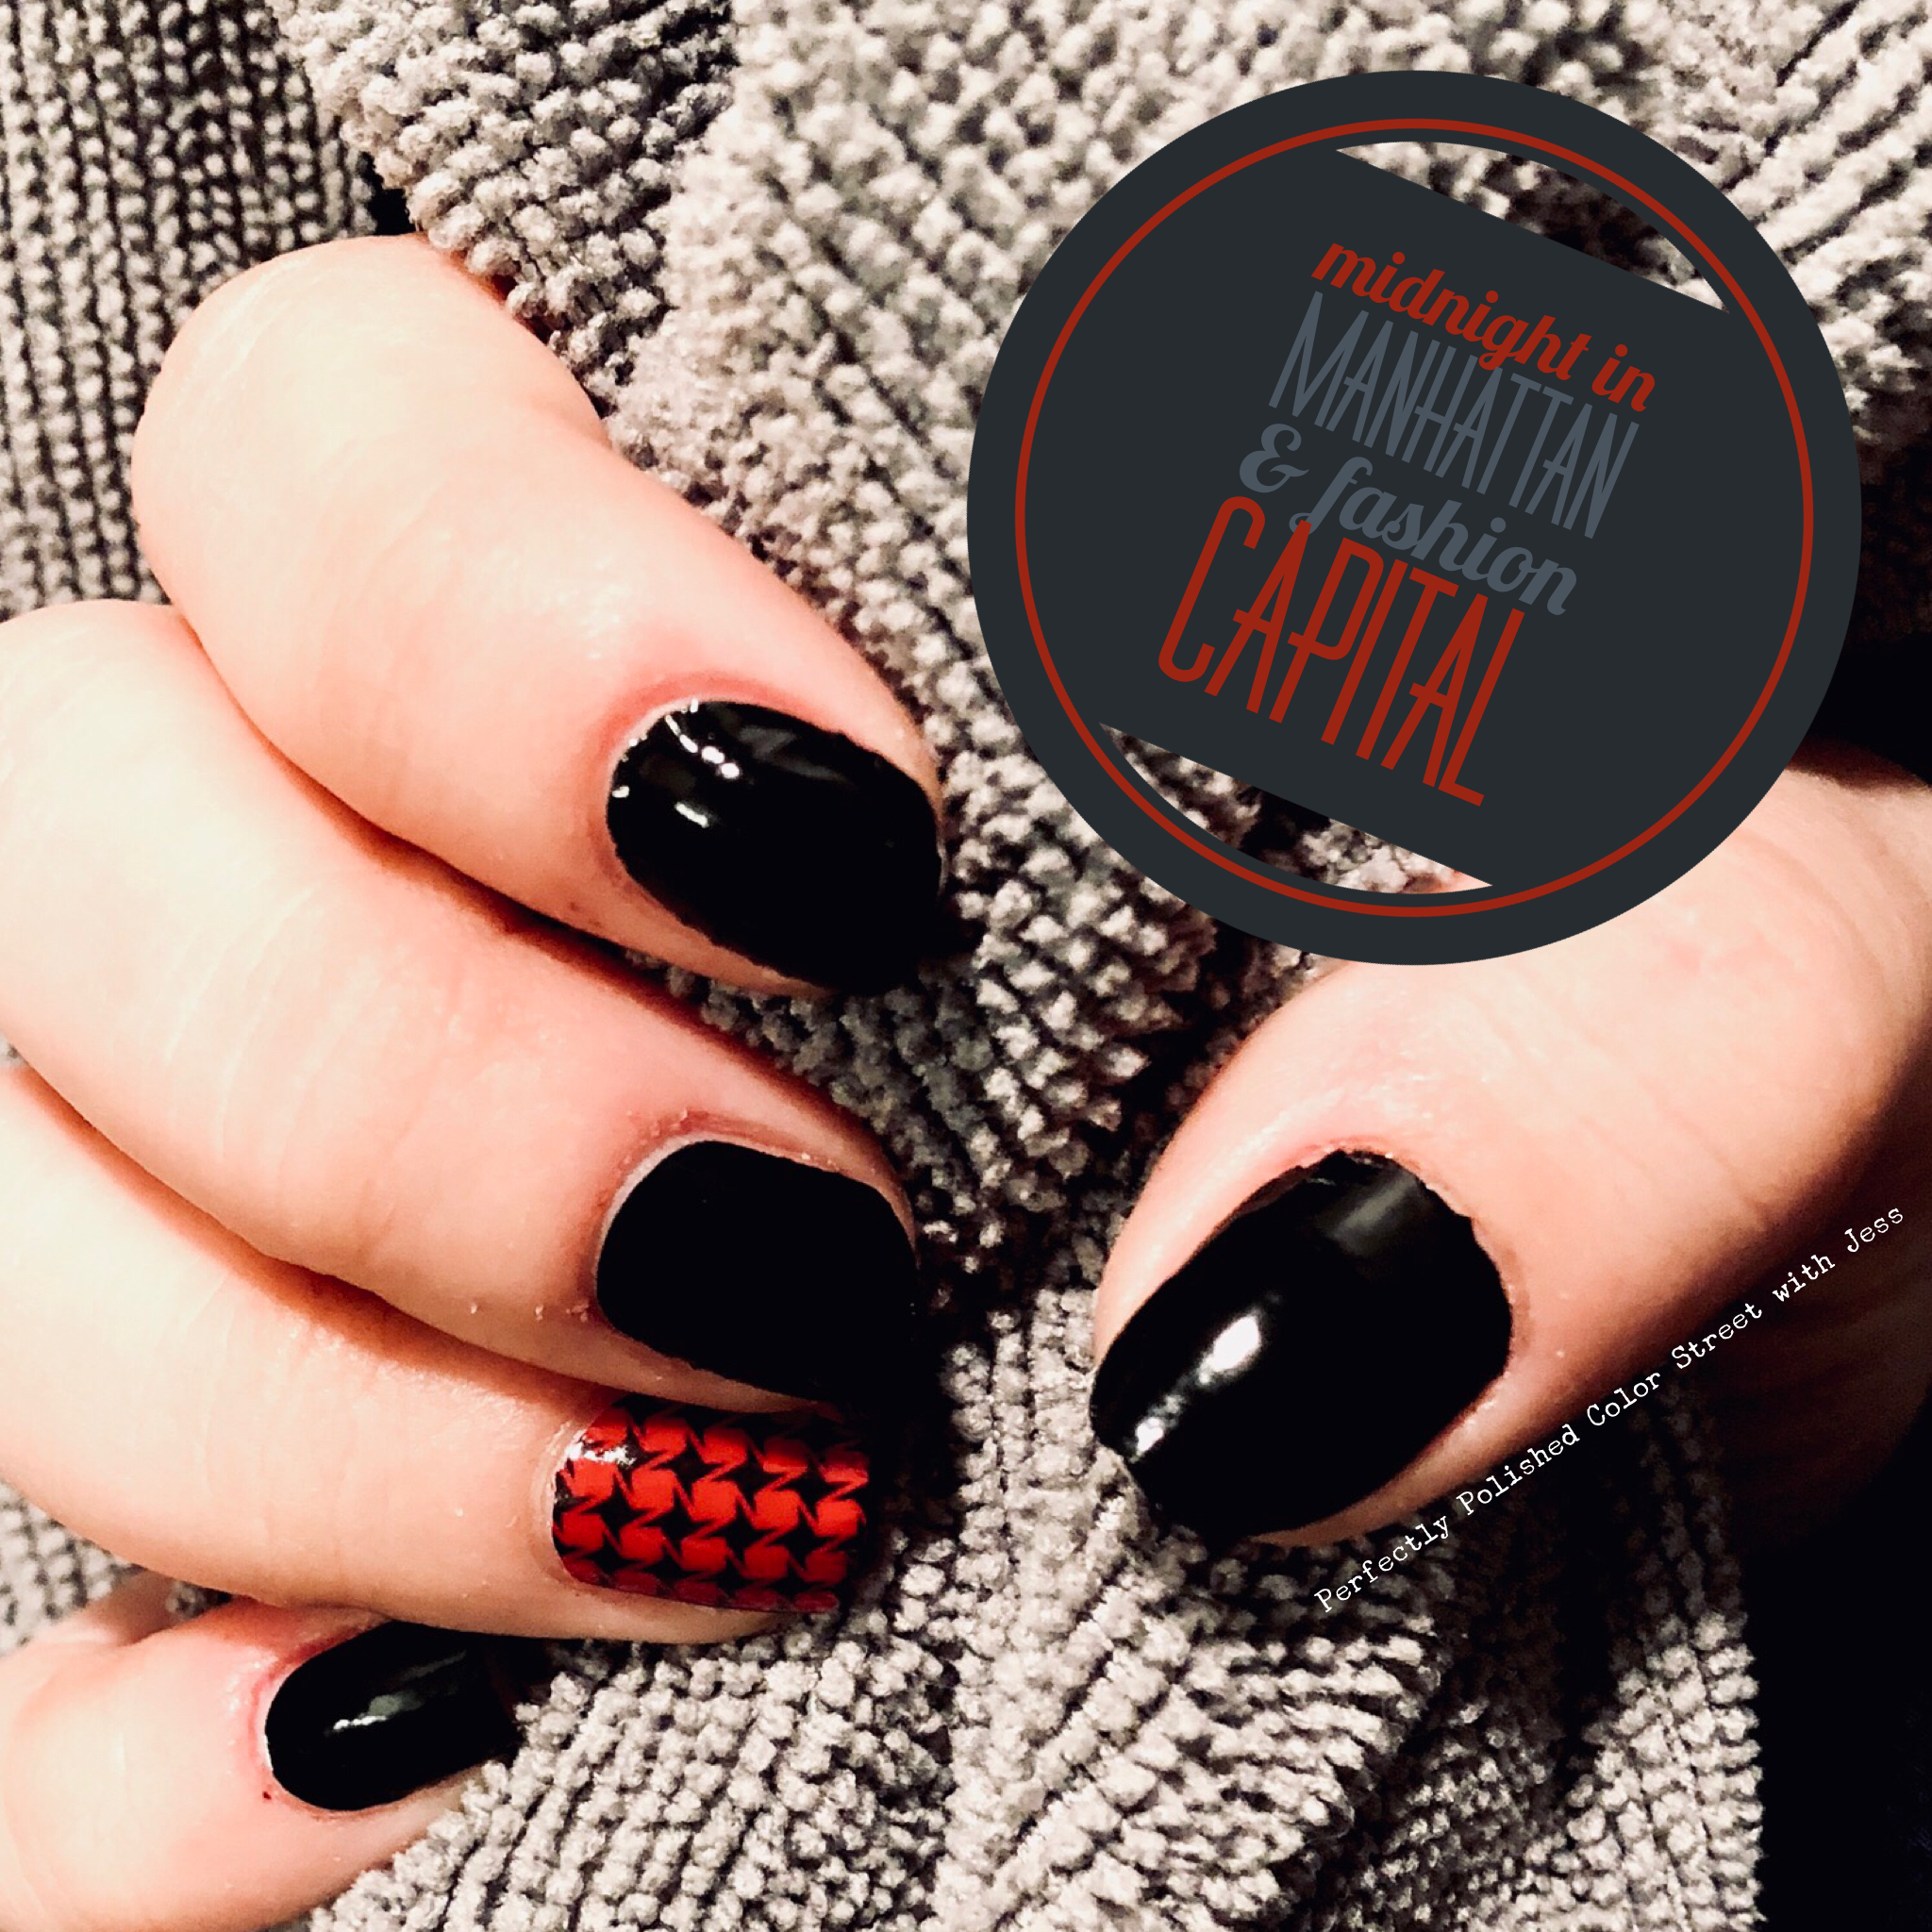 Midnight In Manhattan With Fashion Capital Accent Nail Color Street Nails Colorstreet Midnightinmanhattan Fash Color Street Nails Color Street Nail Colors